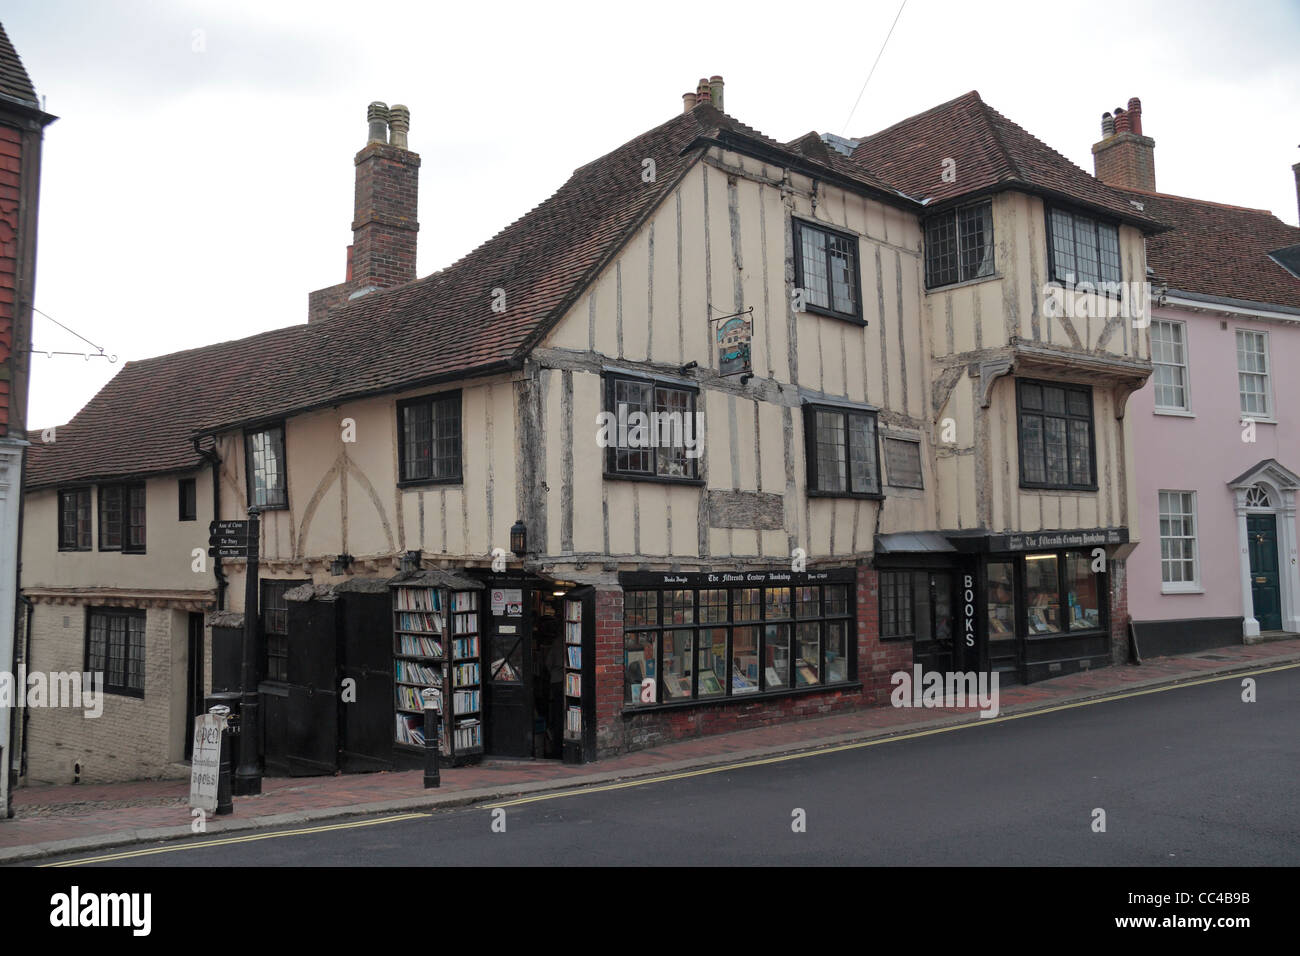 The Fifteenth Century Bookshop in Lewes, East Sussex, UK. - Stock Image